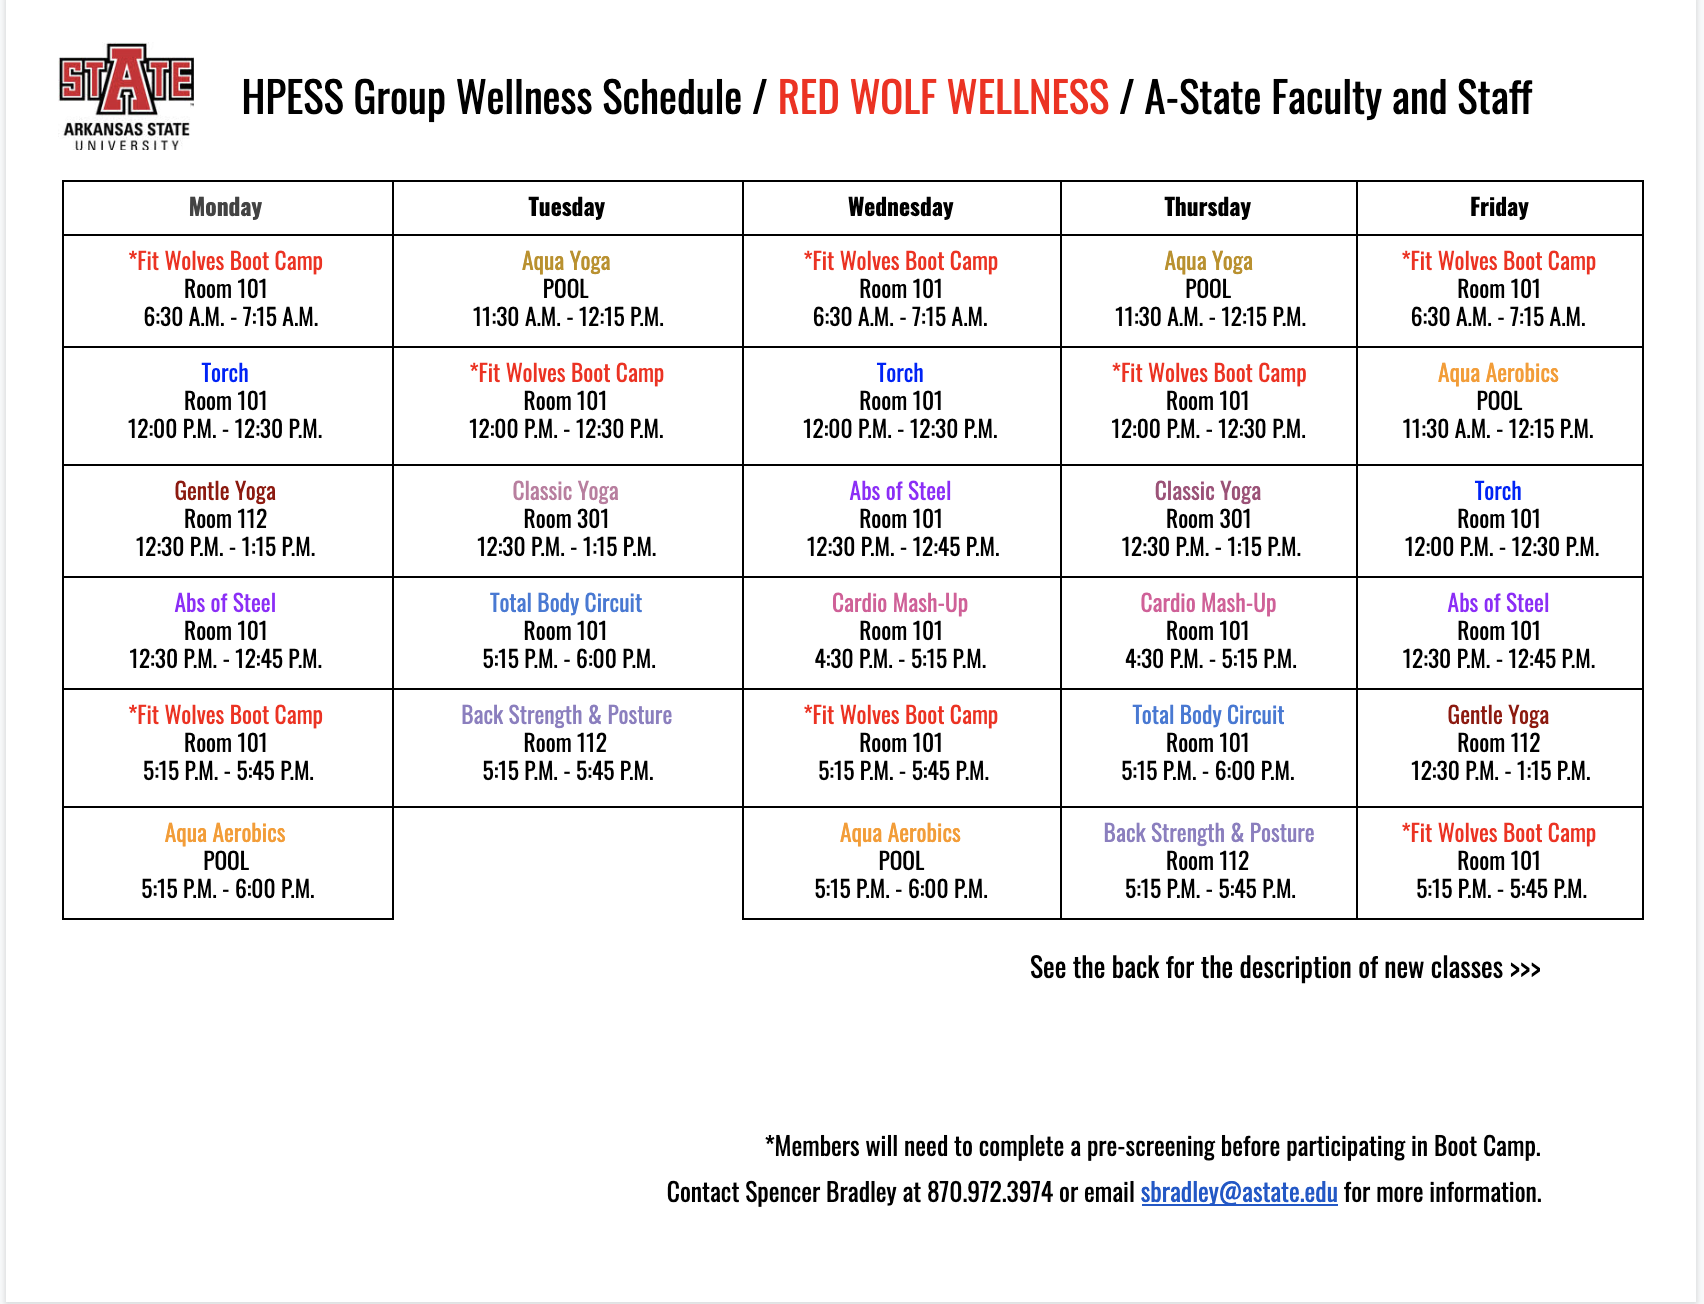 Hpess Group Wellness Schedule Within Arkansas State University Holiday Schedule